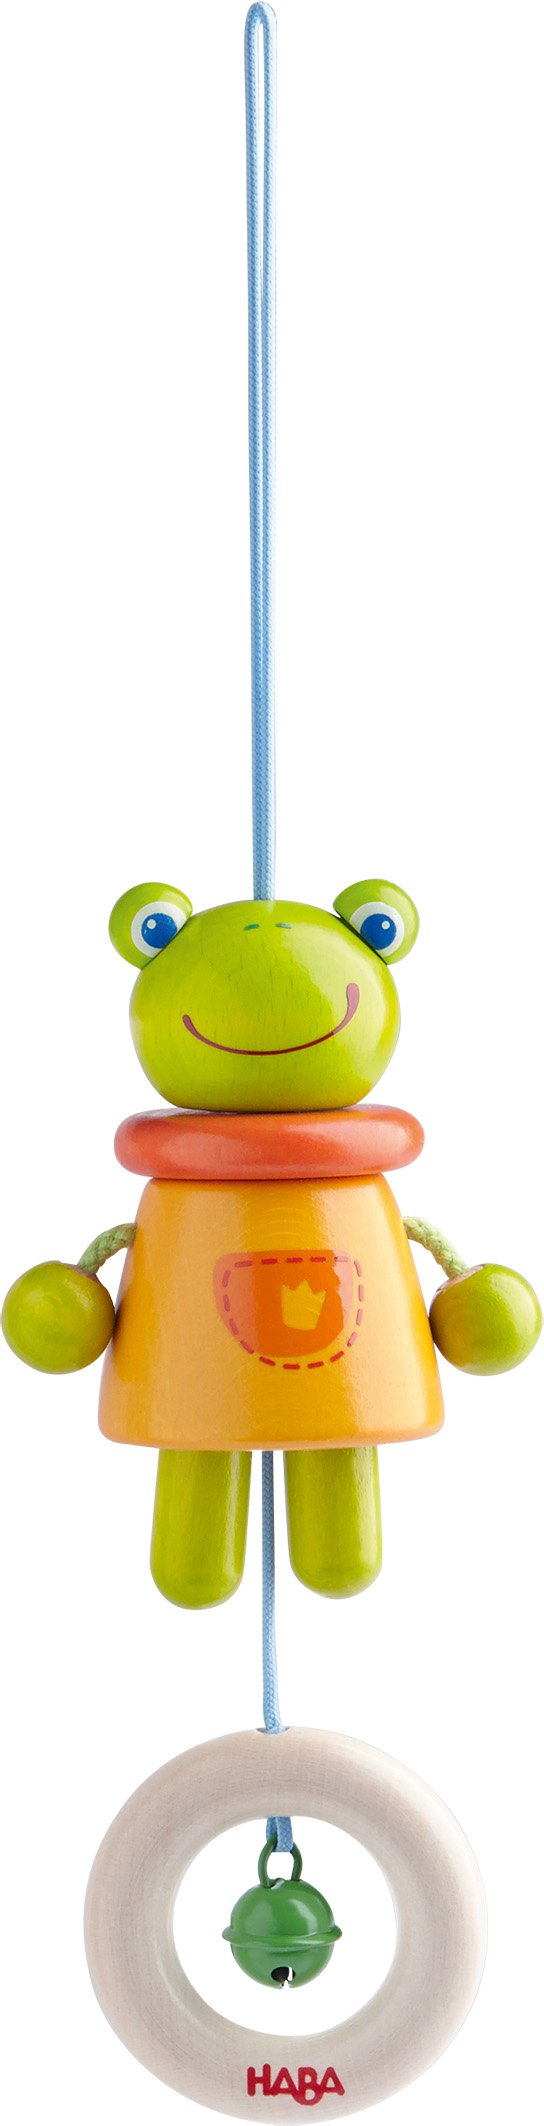 HABA Magic Frog Wooden Dangling Figure (Made in Germany)